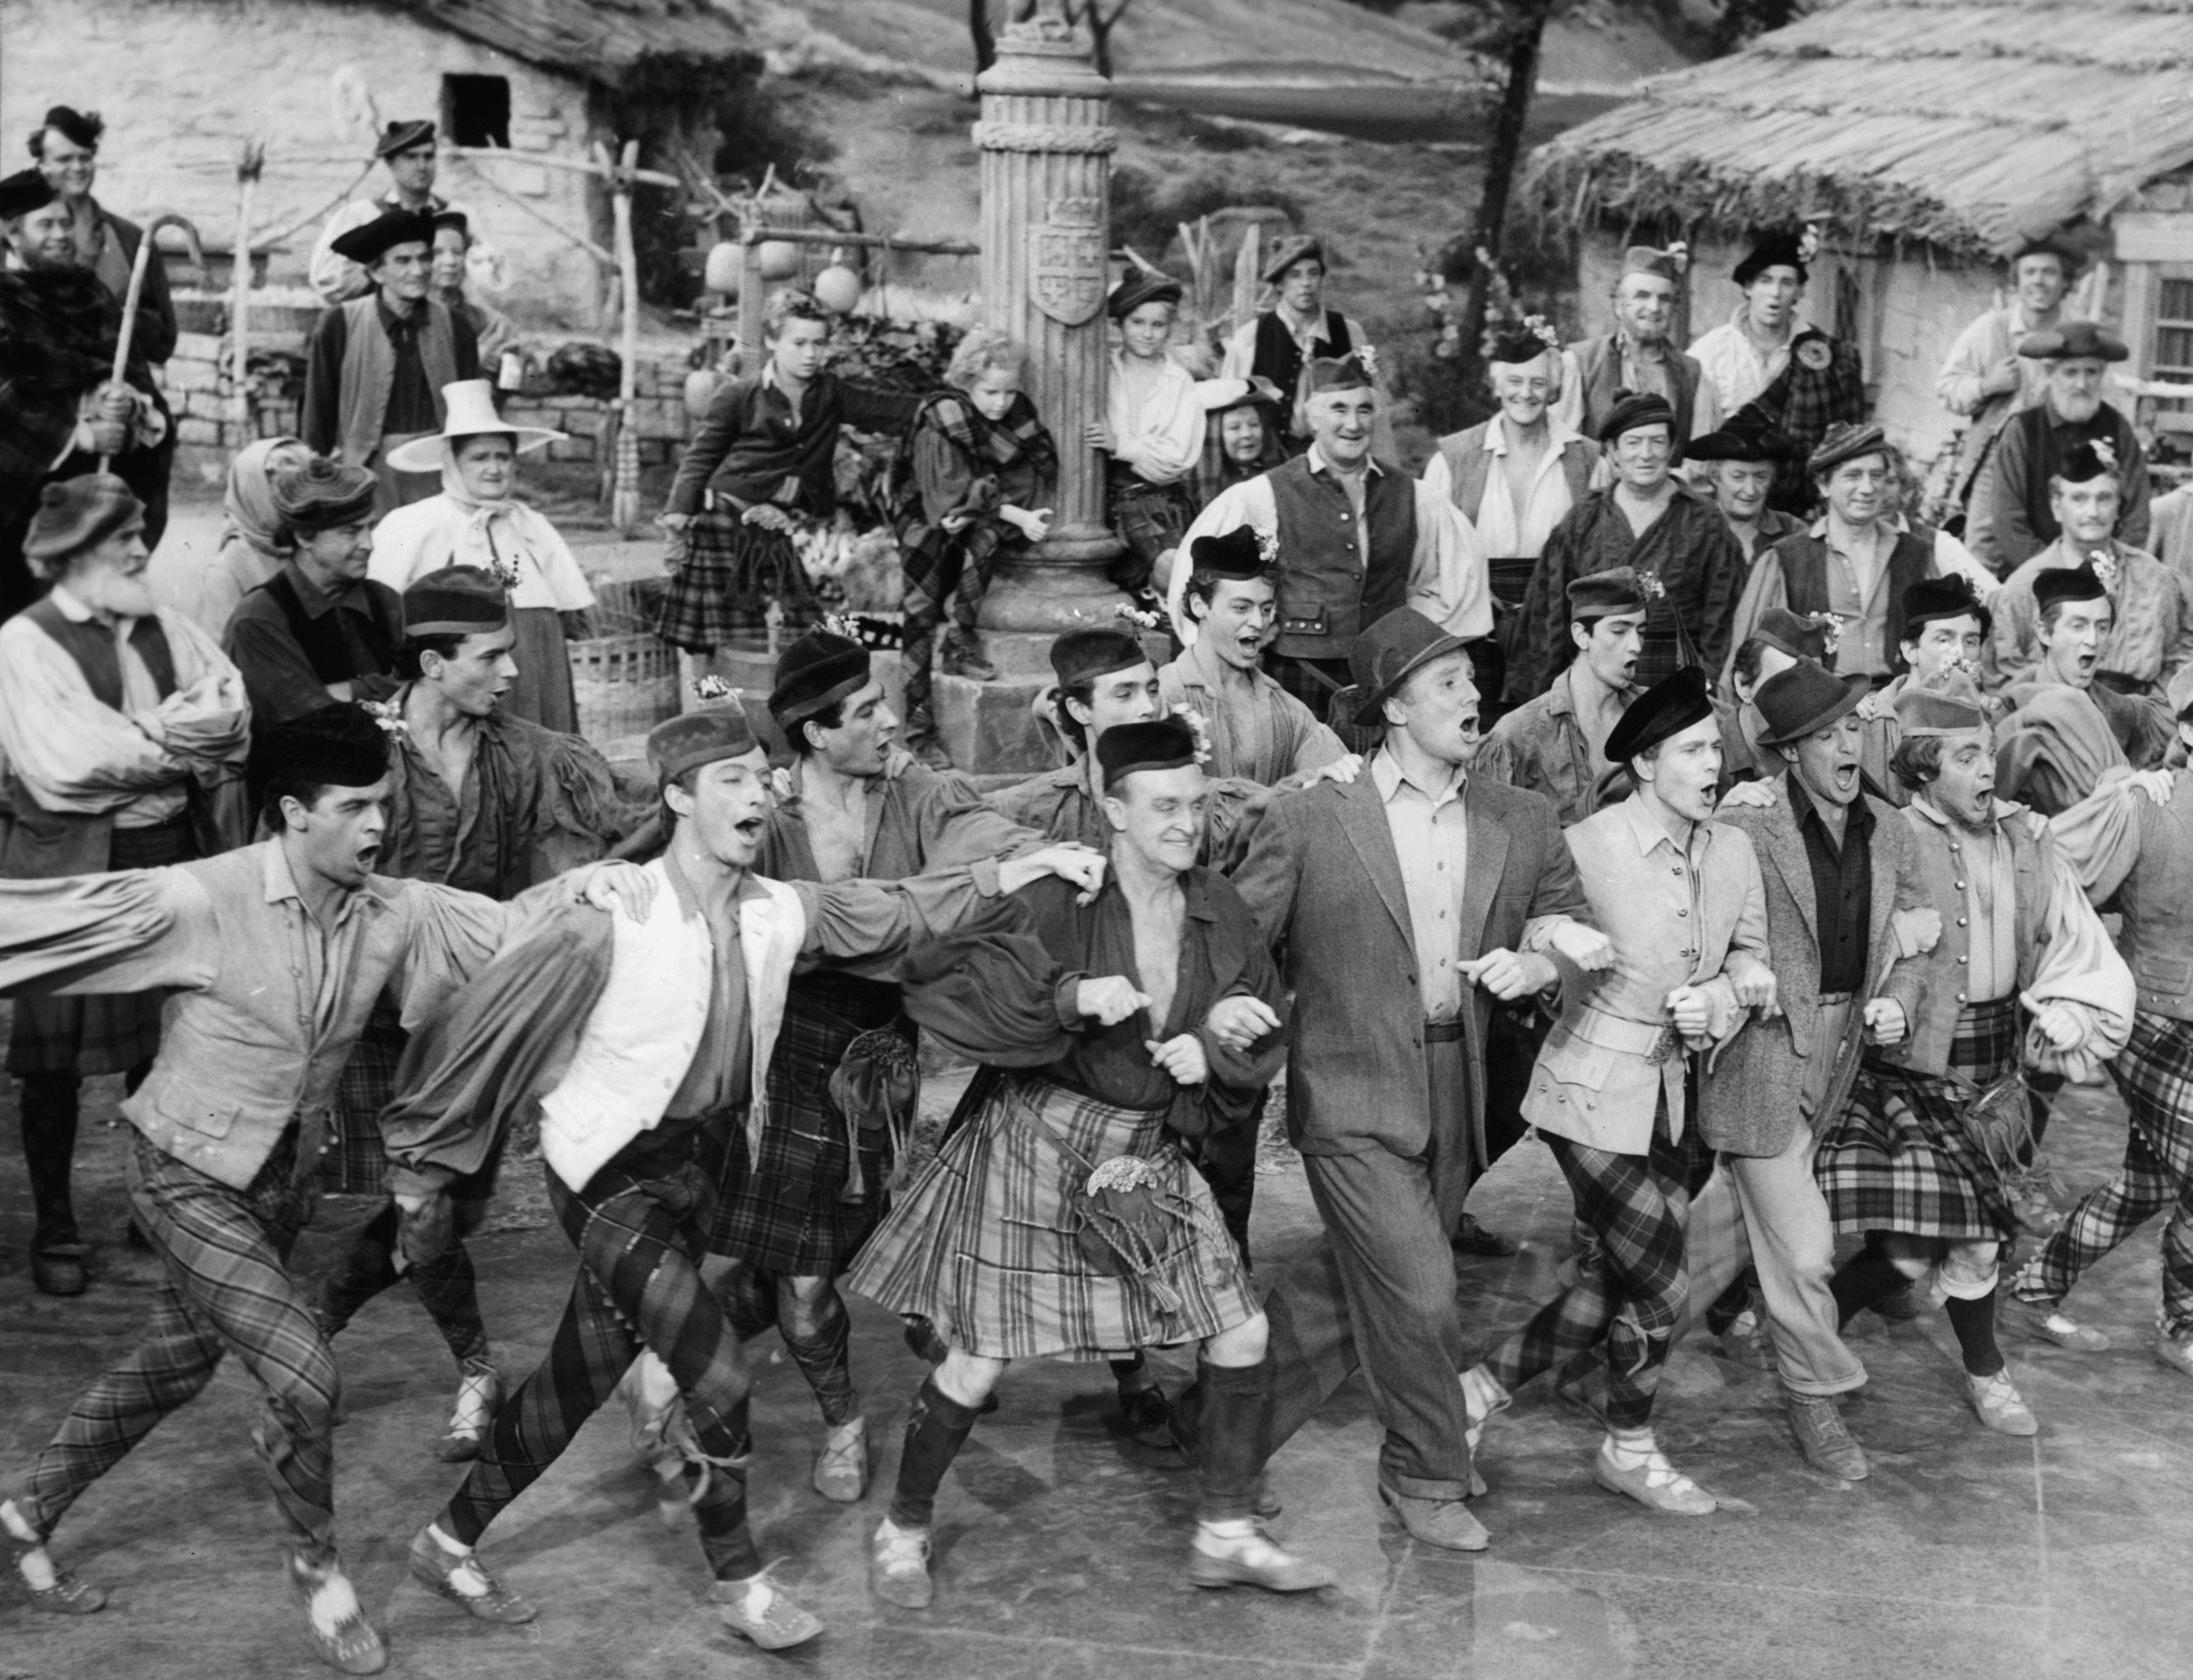 Gene Kelly, Van Johnson, Buddy Bryan, Lorna Jordon, Eddie Quillan, Gregor Momdjian, and Jimmy Brooks in Brigadoon (1954)